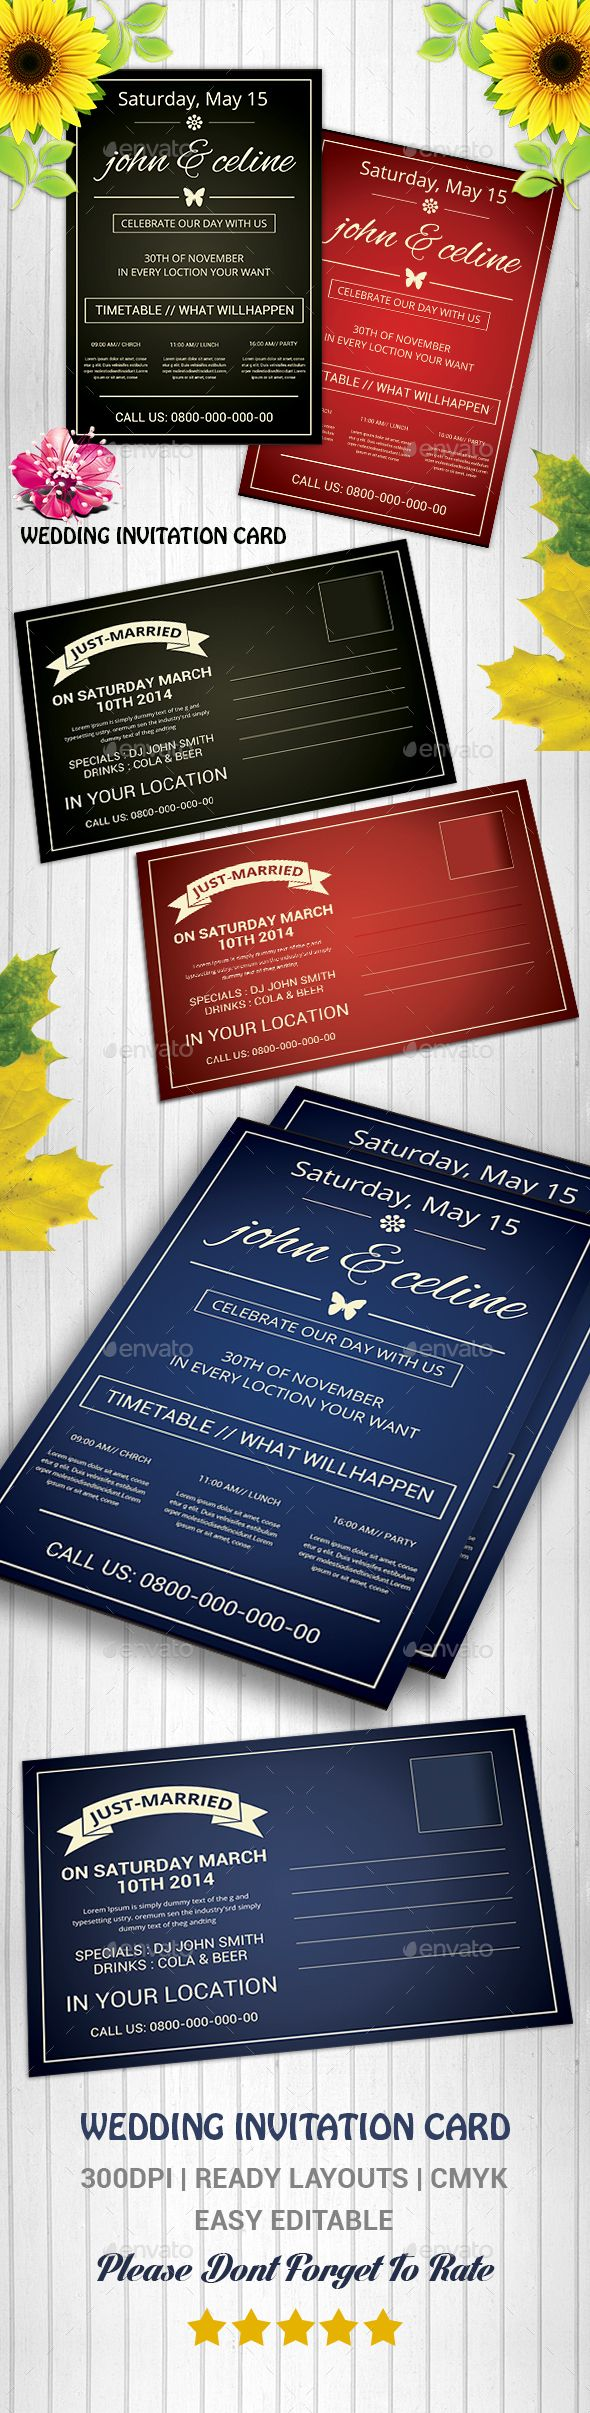 Wedding Invitation Card | Wedding invitation cards, Font logo and ...